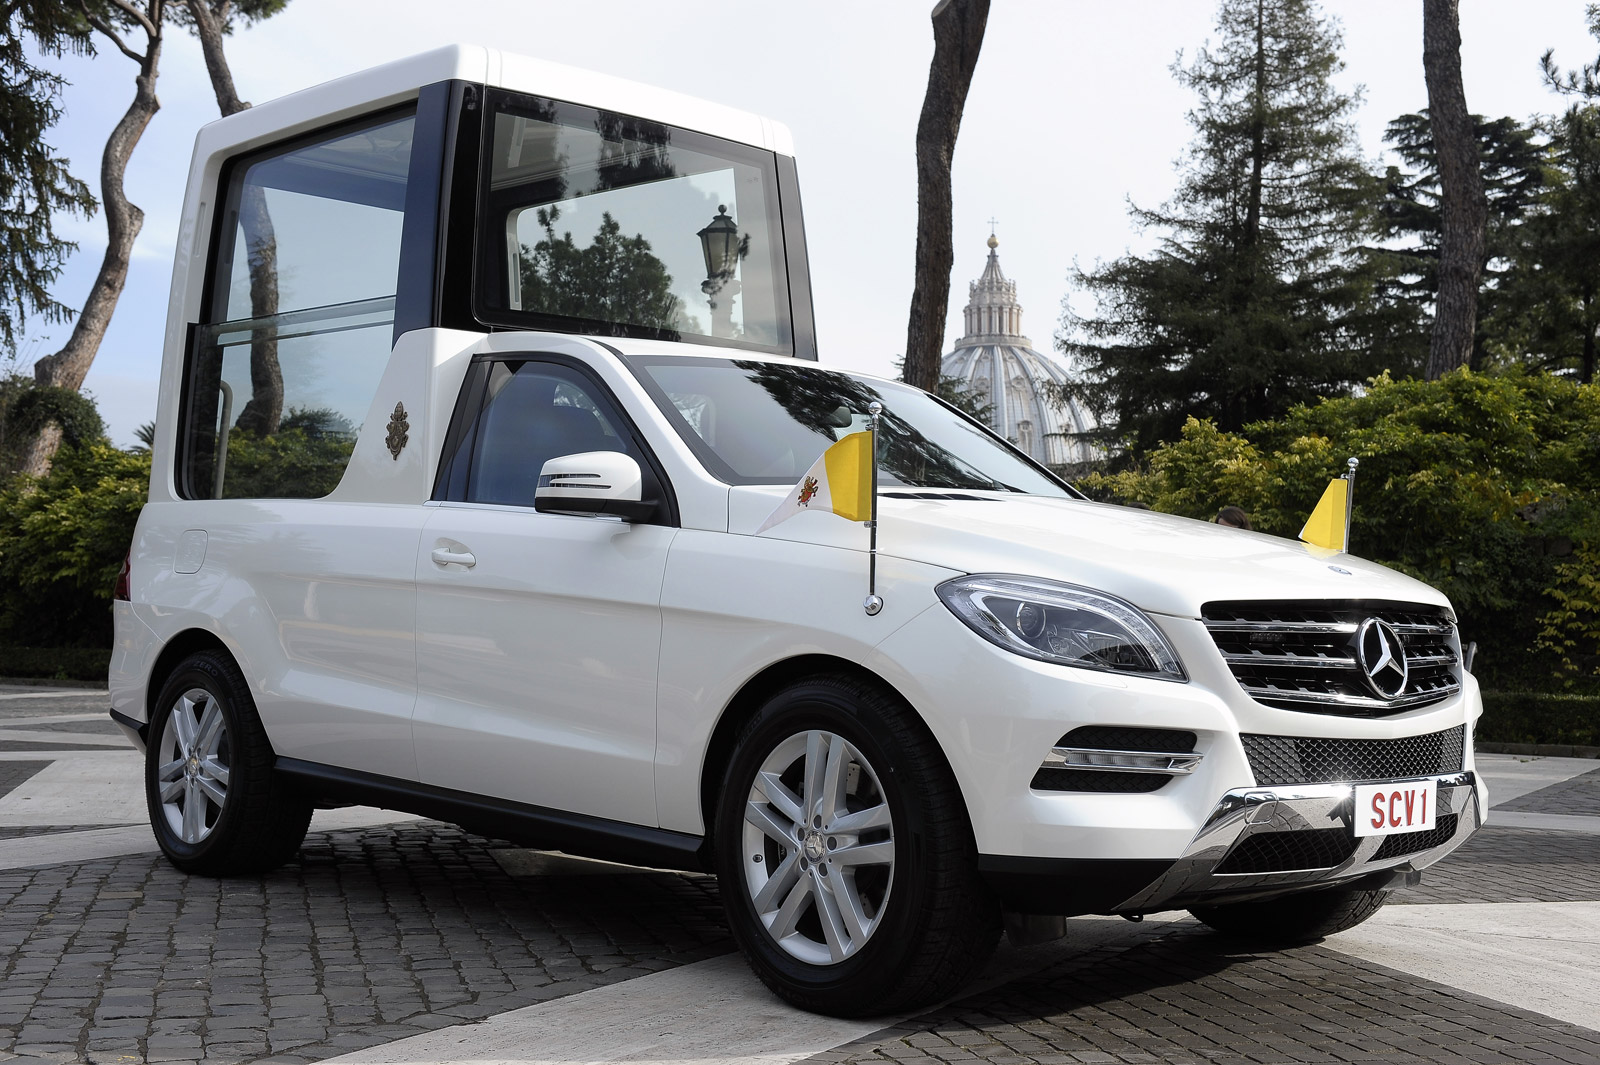 Cars With A Third Row >> Pope Francis Presented With Mercedes M Class-Based Popemobile